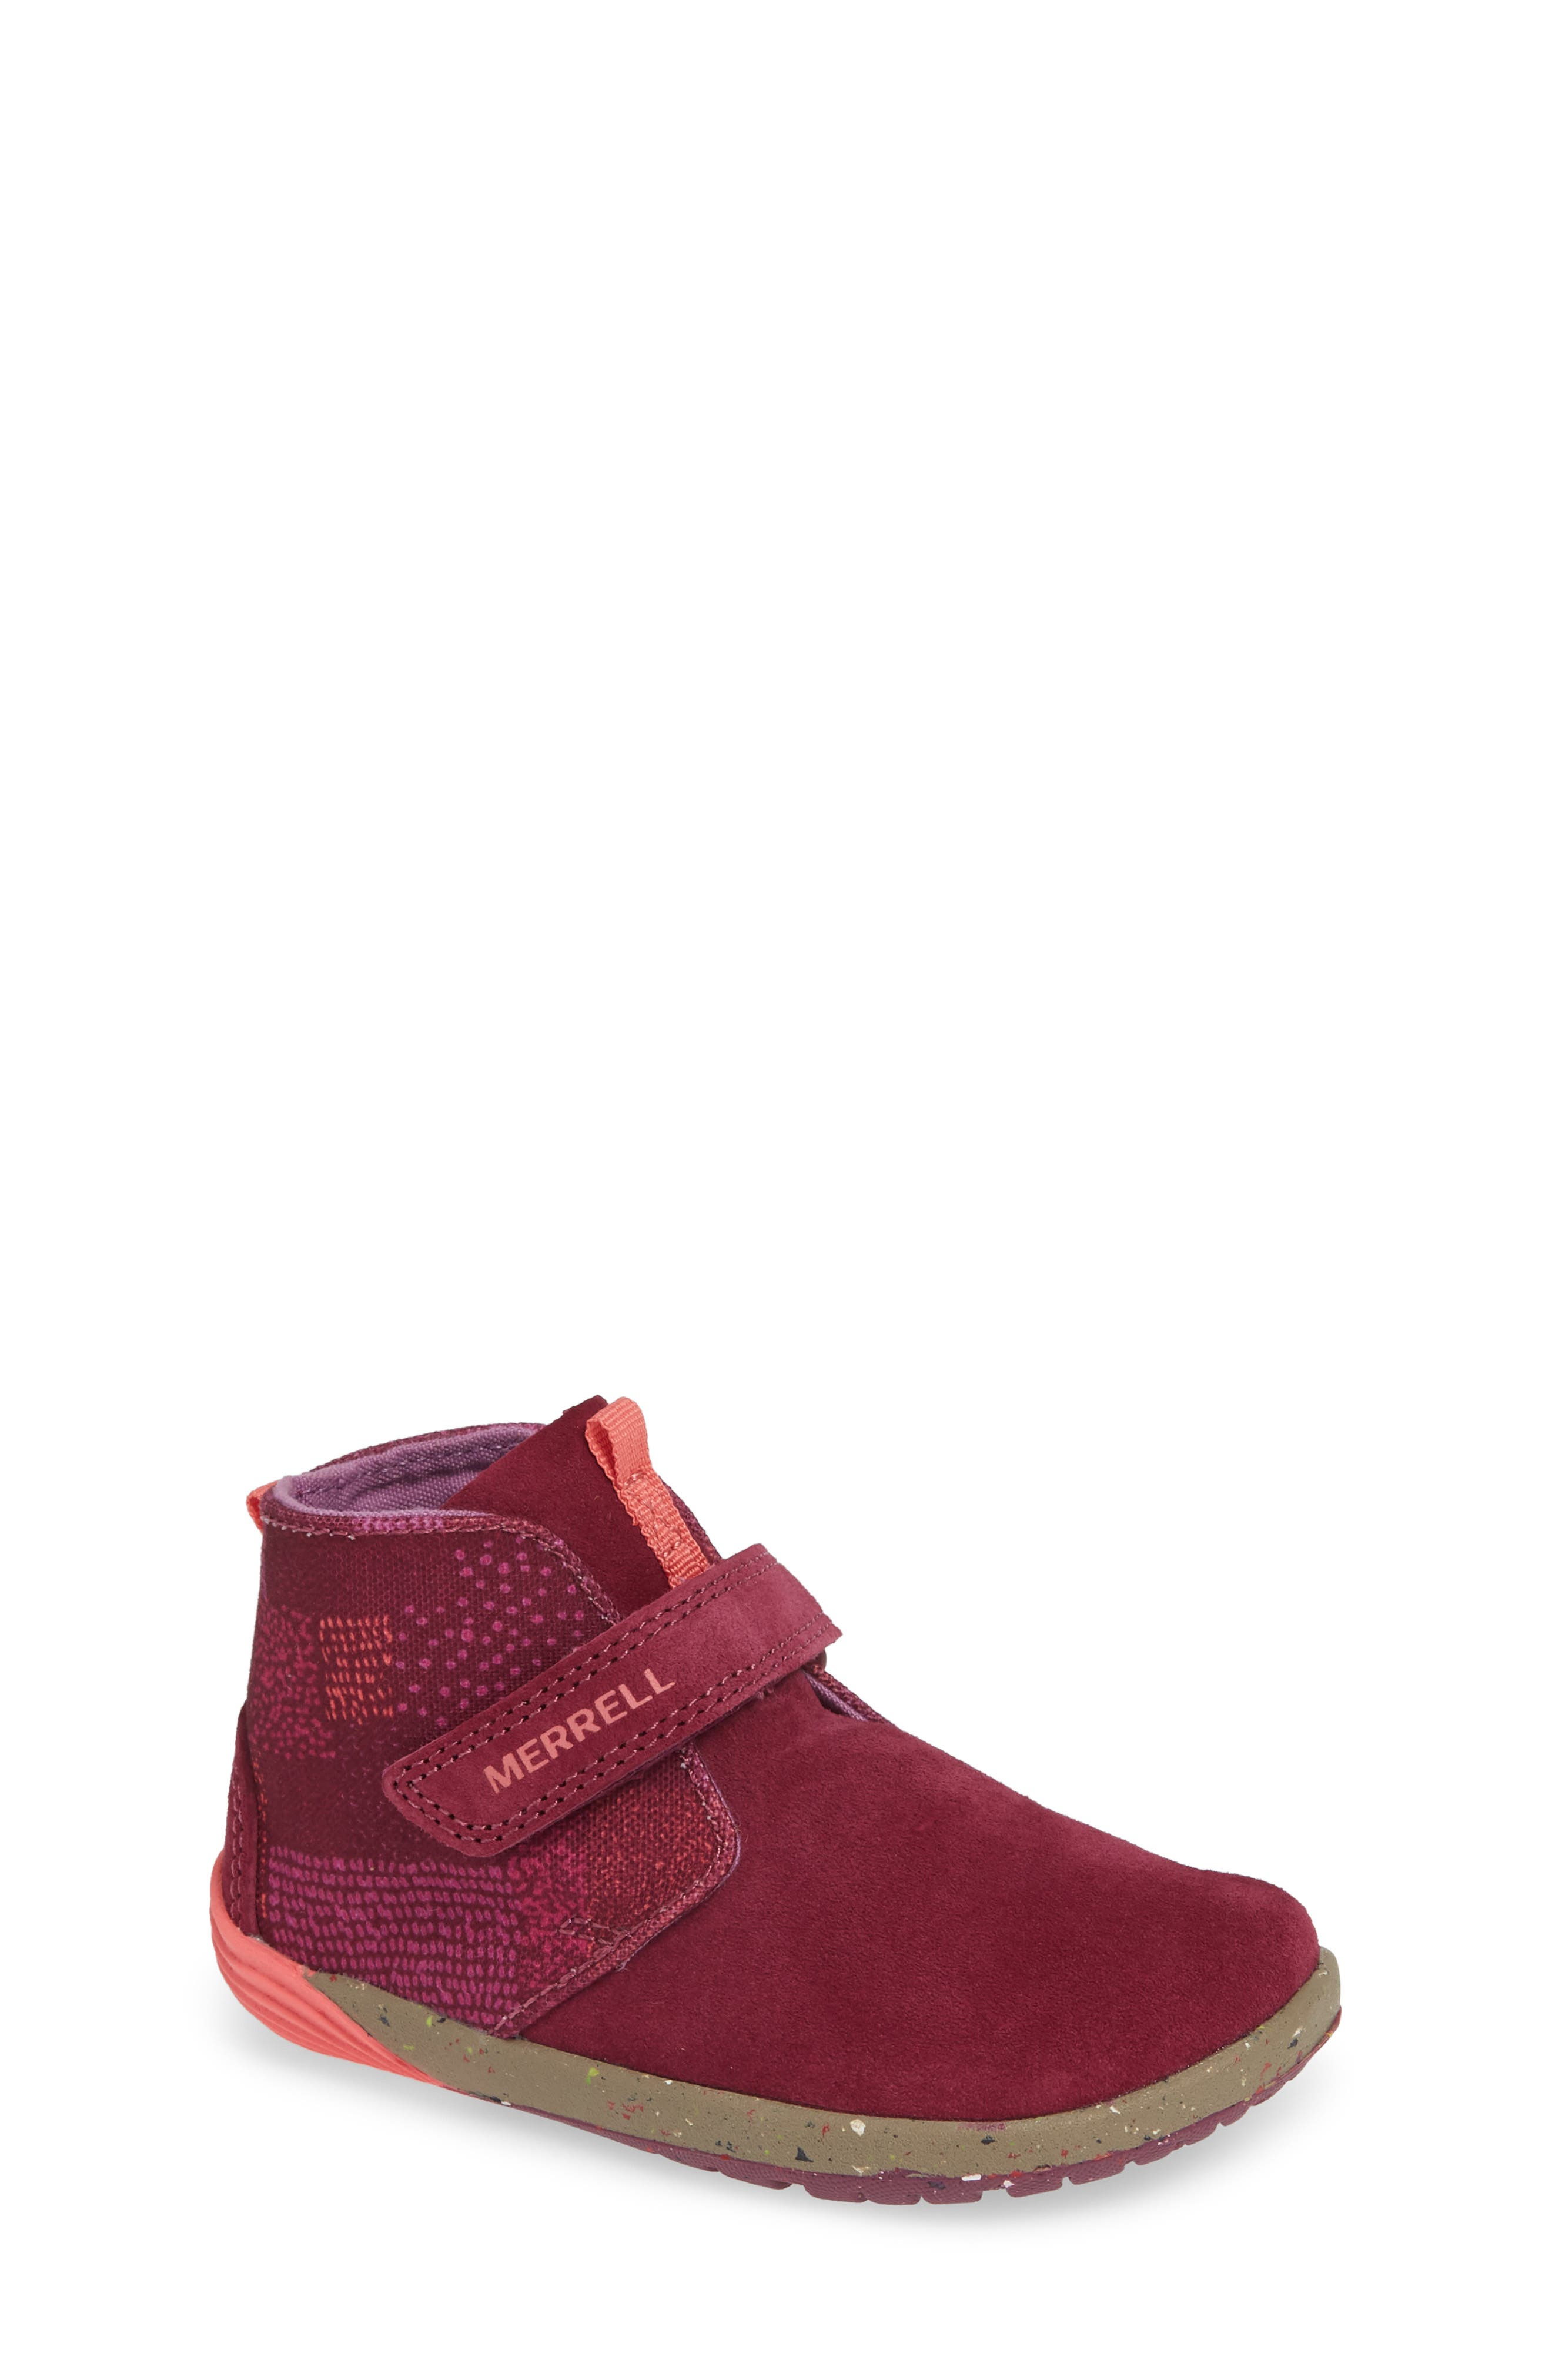 MERRELL, Bare Steps Boot, Main thumbnail 1, color, BERRY